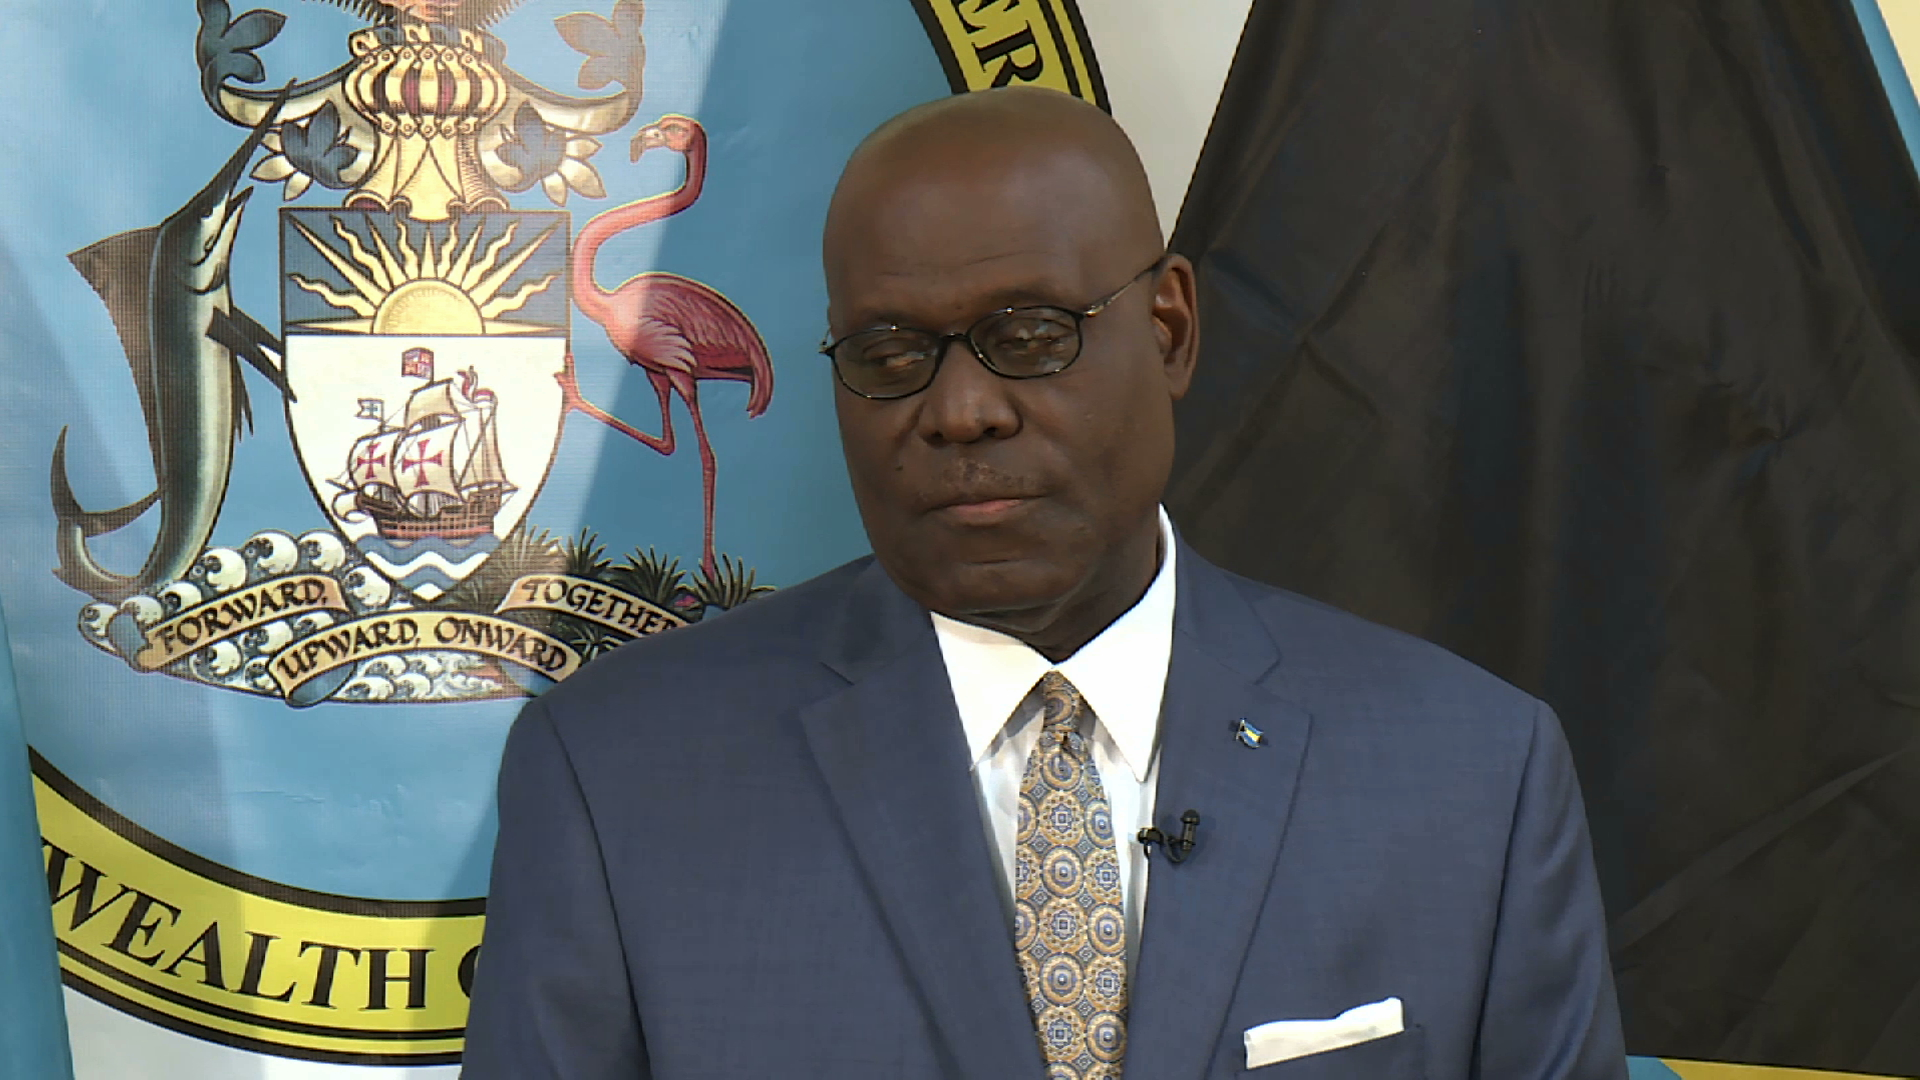 Govt. concerned about Bahamians welfare, not approval ratings